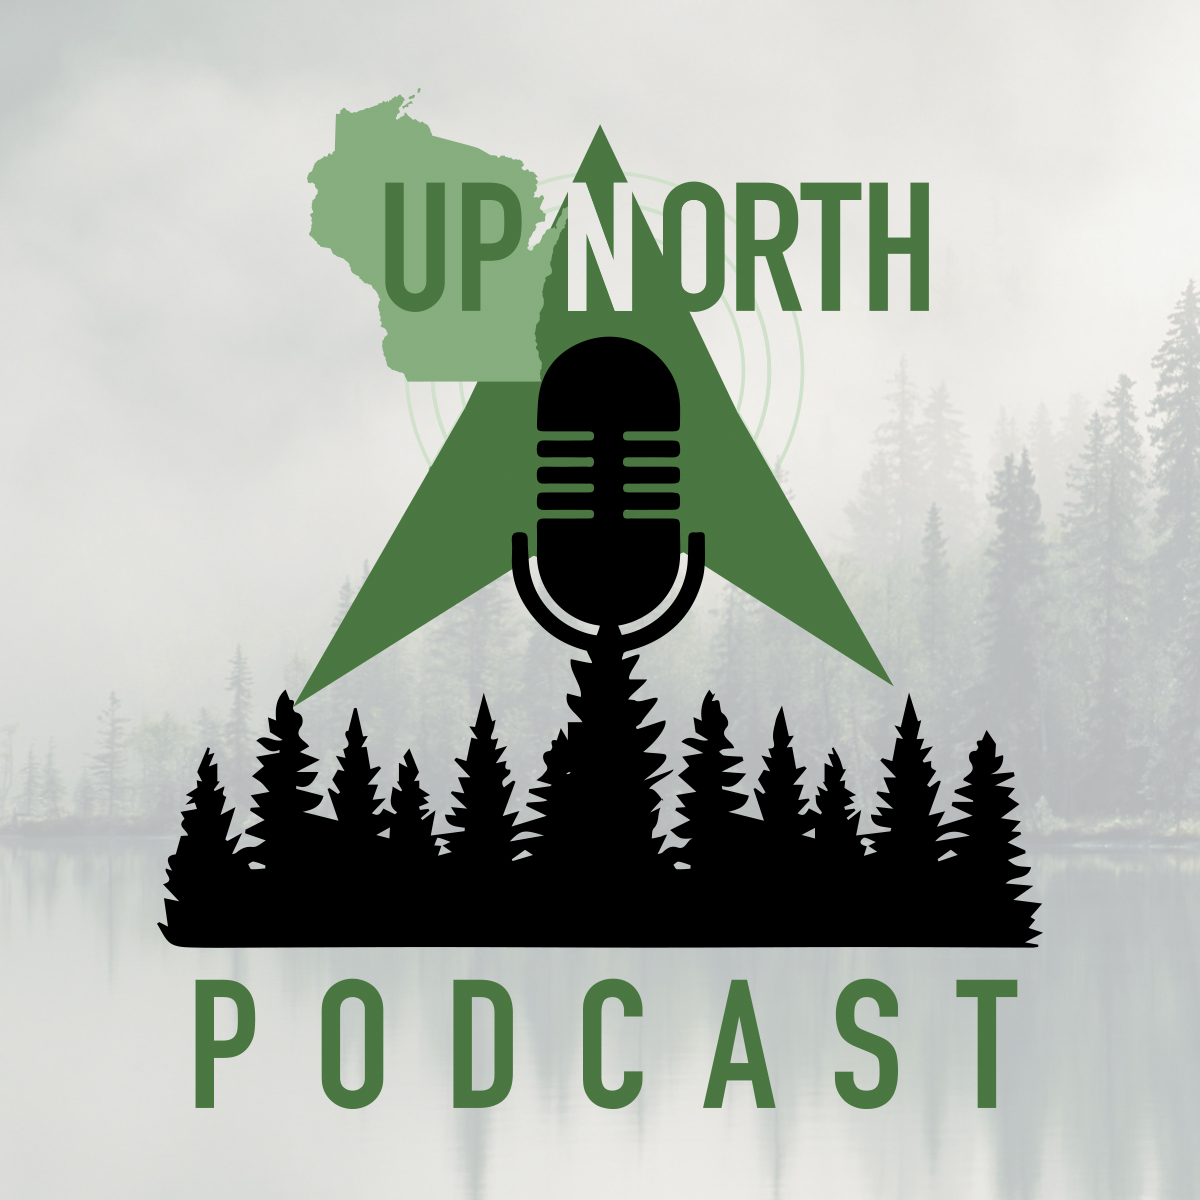 The UpNorth Podcast